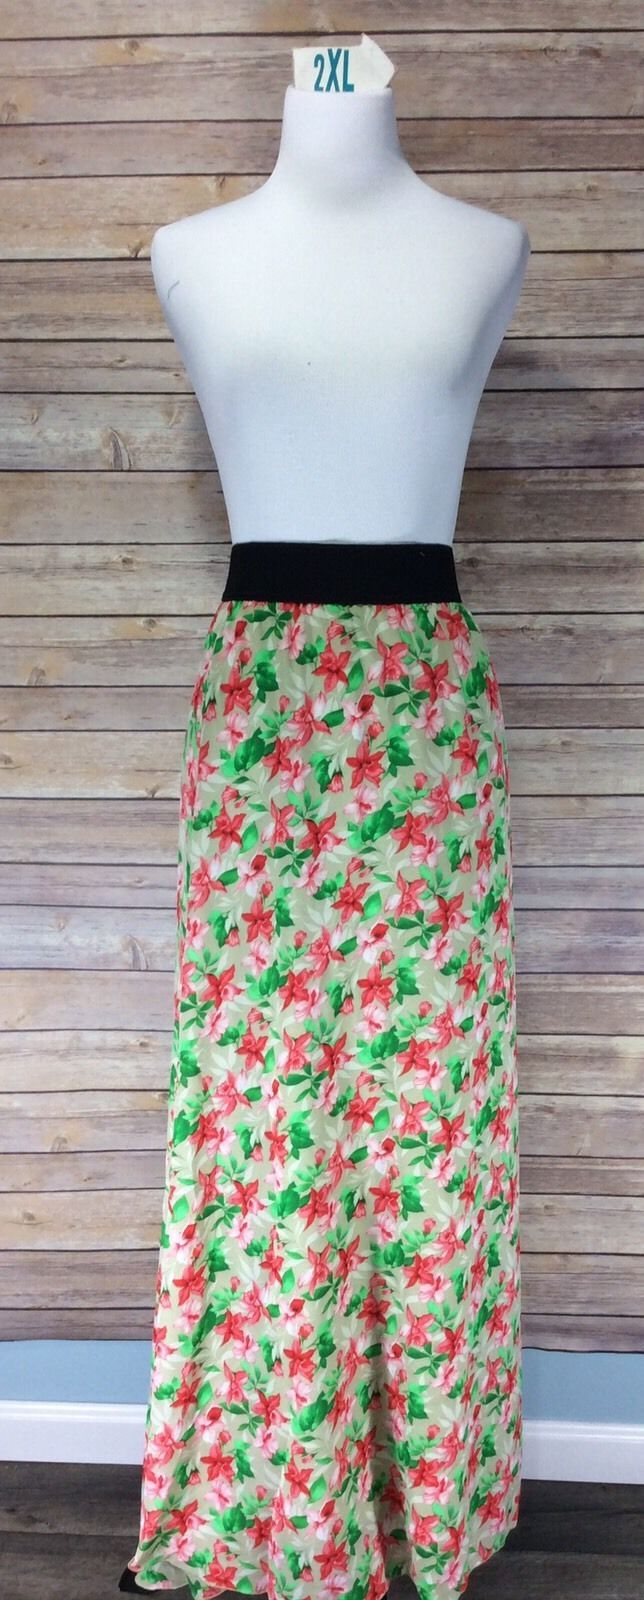 LuLaRoe Lucy Skirt Size 2XL Floral Flowers NWT